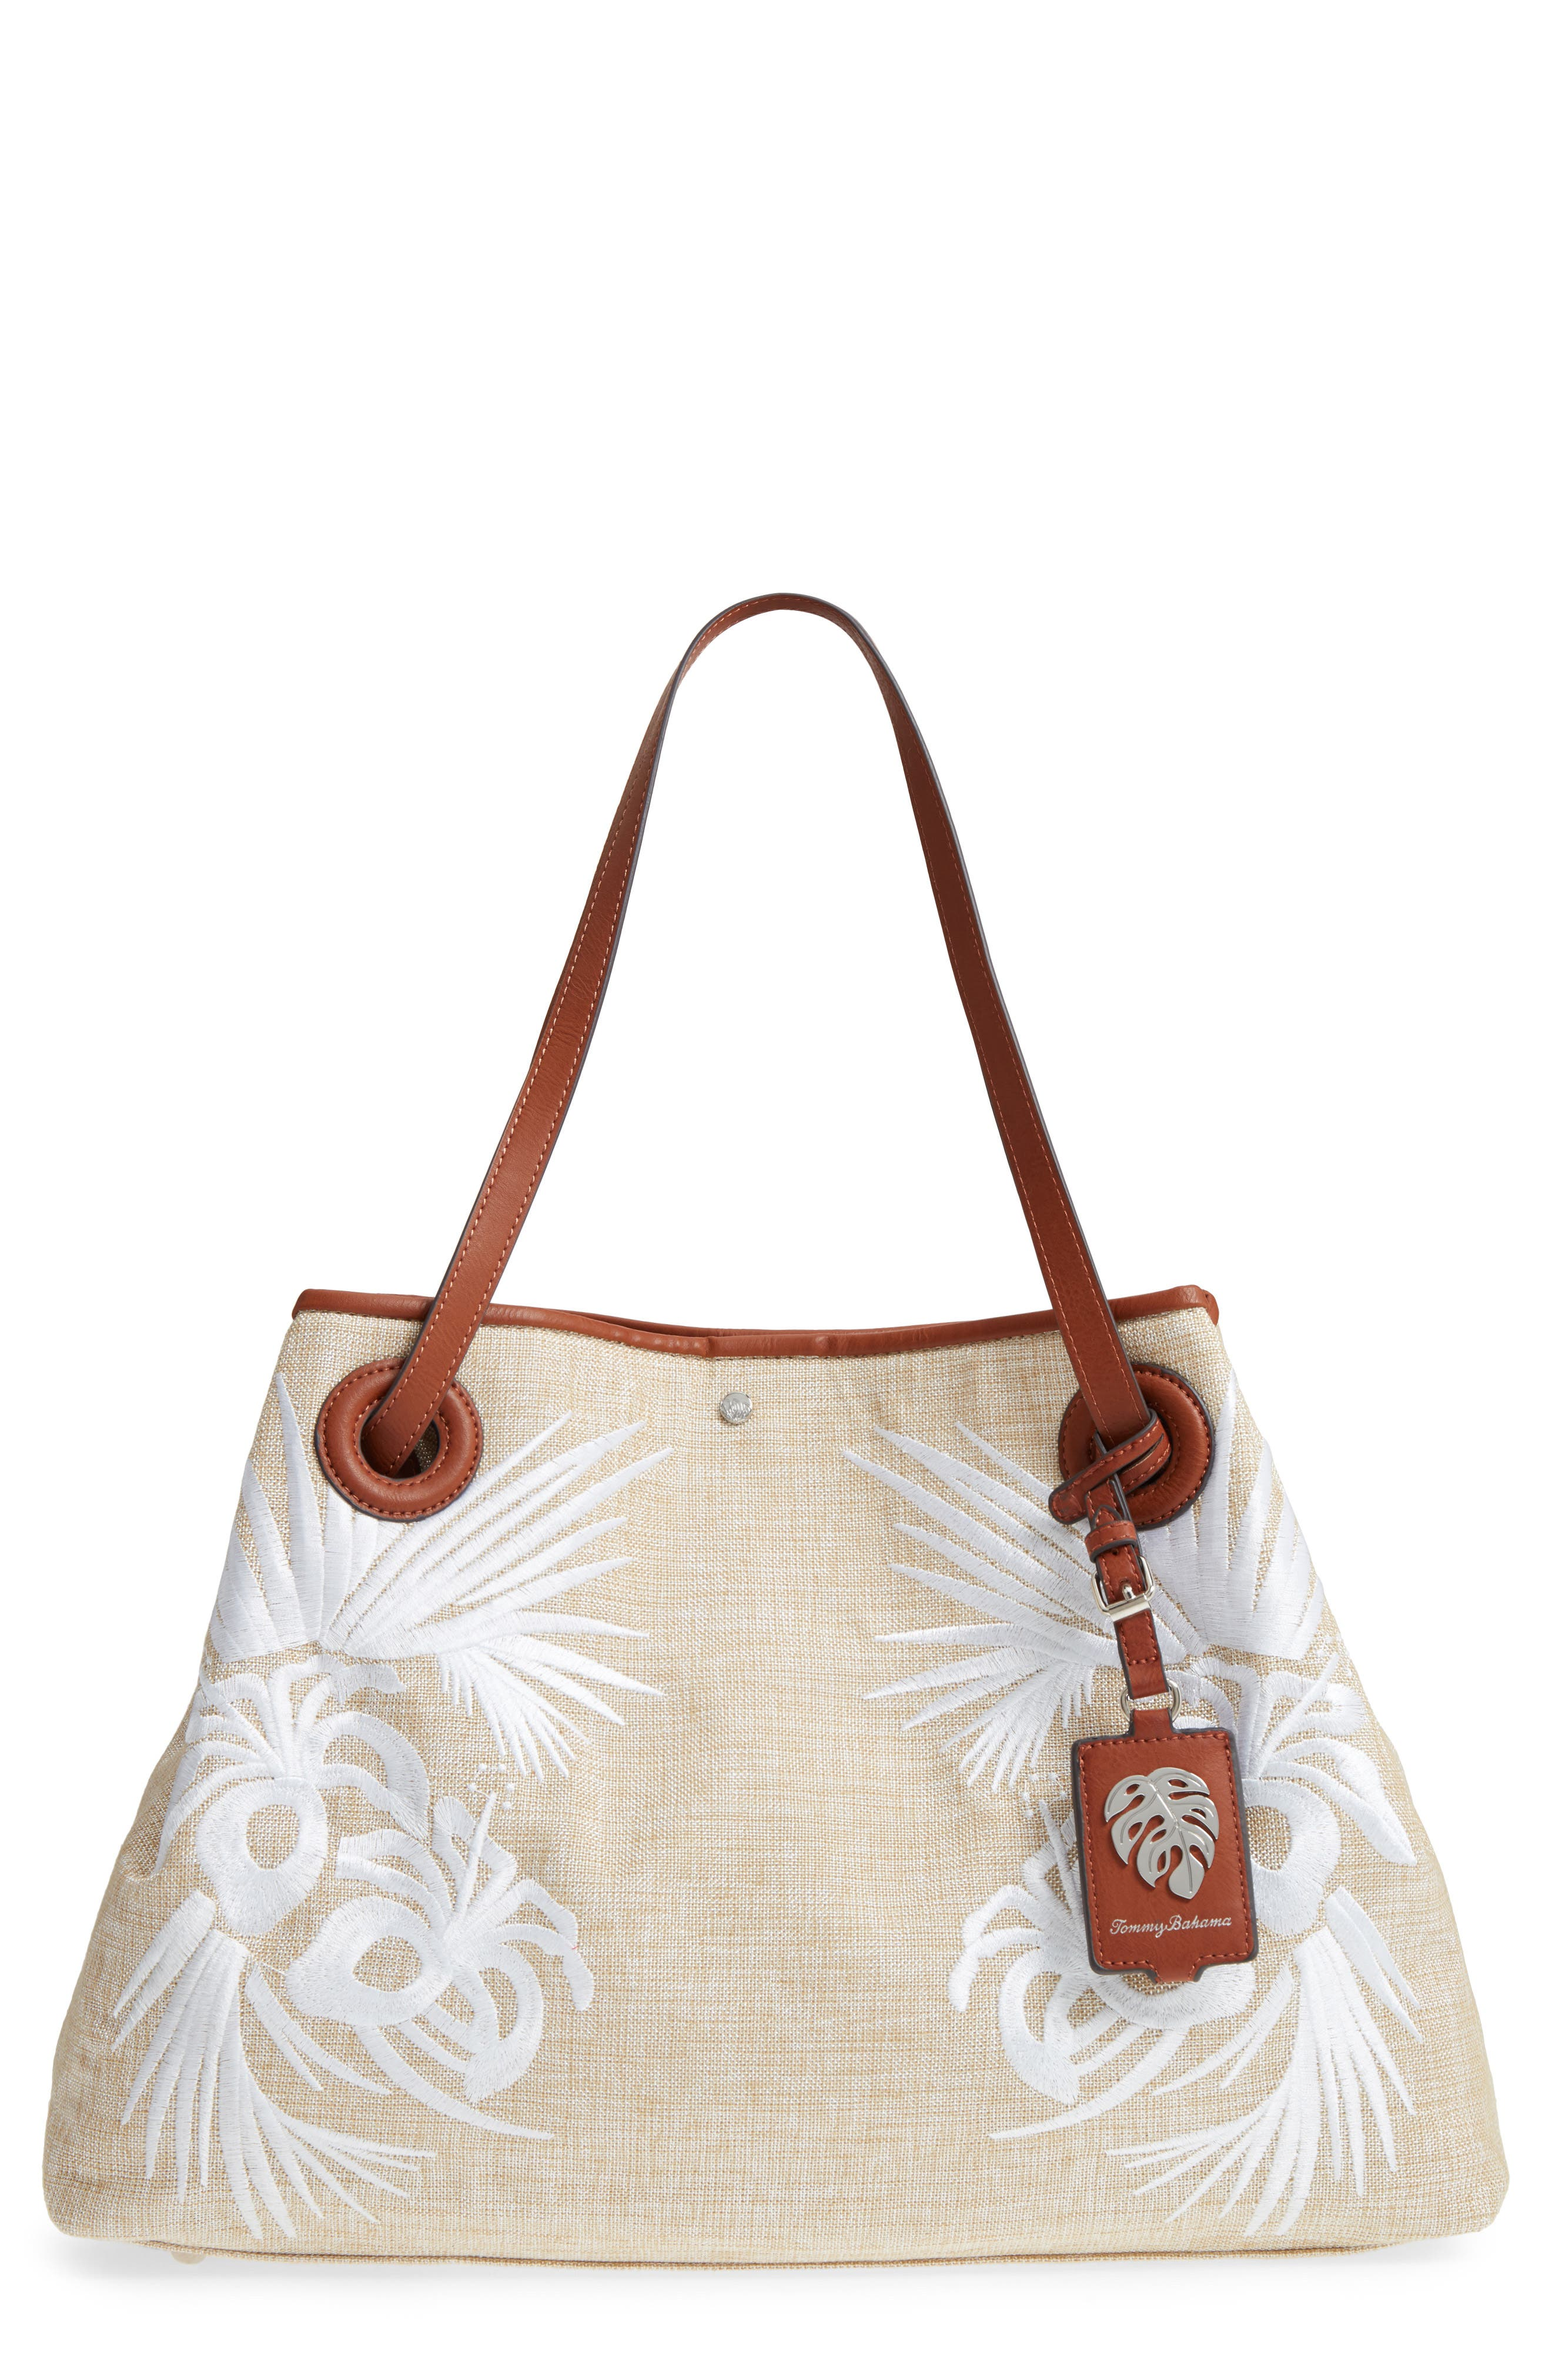 Alternate Image 1 Selected - Tommy Bahama Waikiki Embroidered Canvas Tote